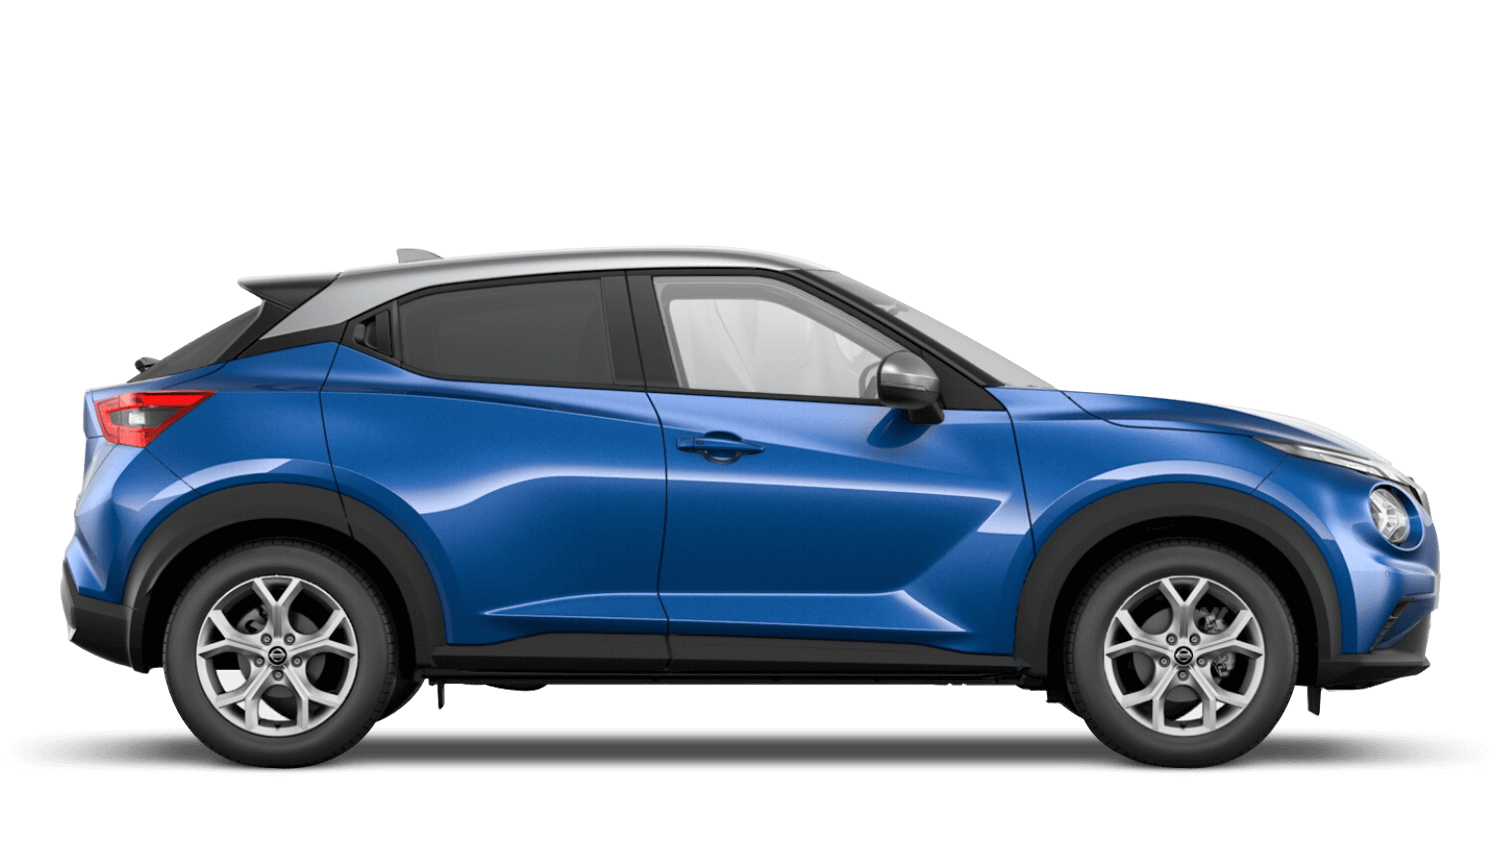 Vivid Blue with Blade Silver Roof Next Generation Nissan Juke